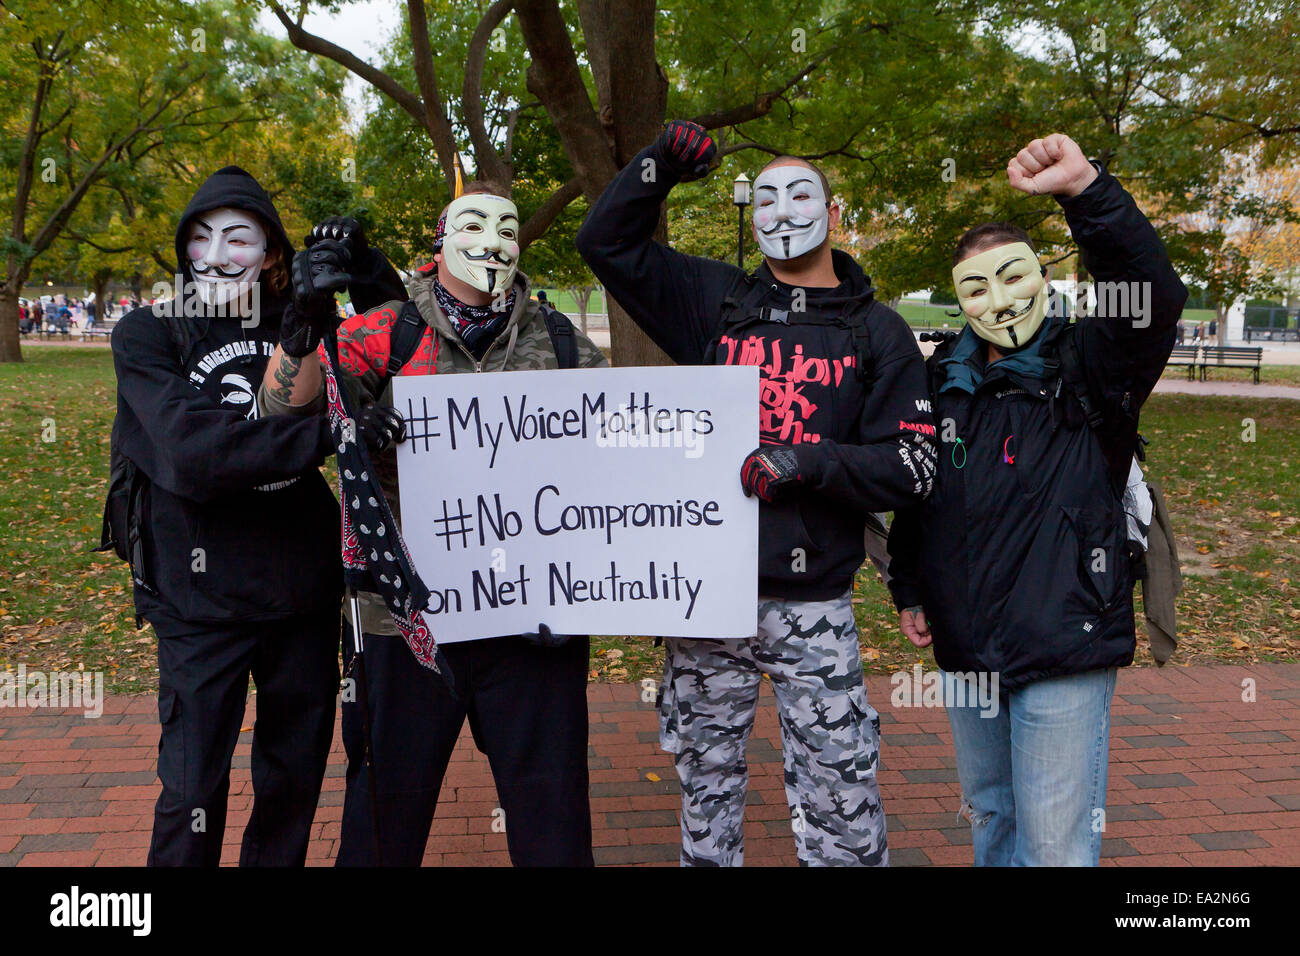 Anonymous members holding pro-net neutrality message  - USA - Stock Image